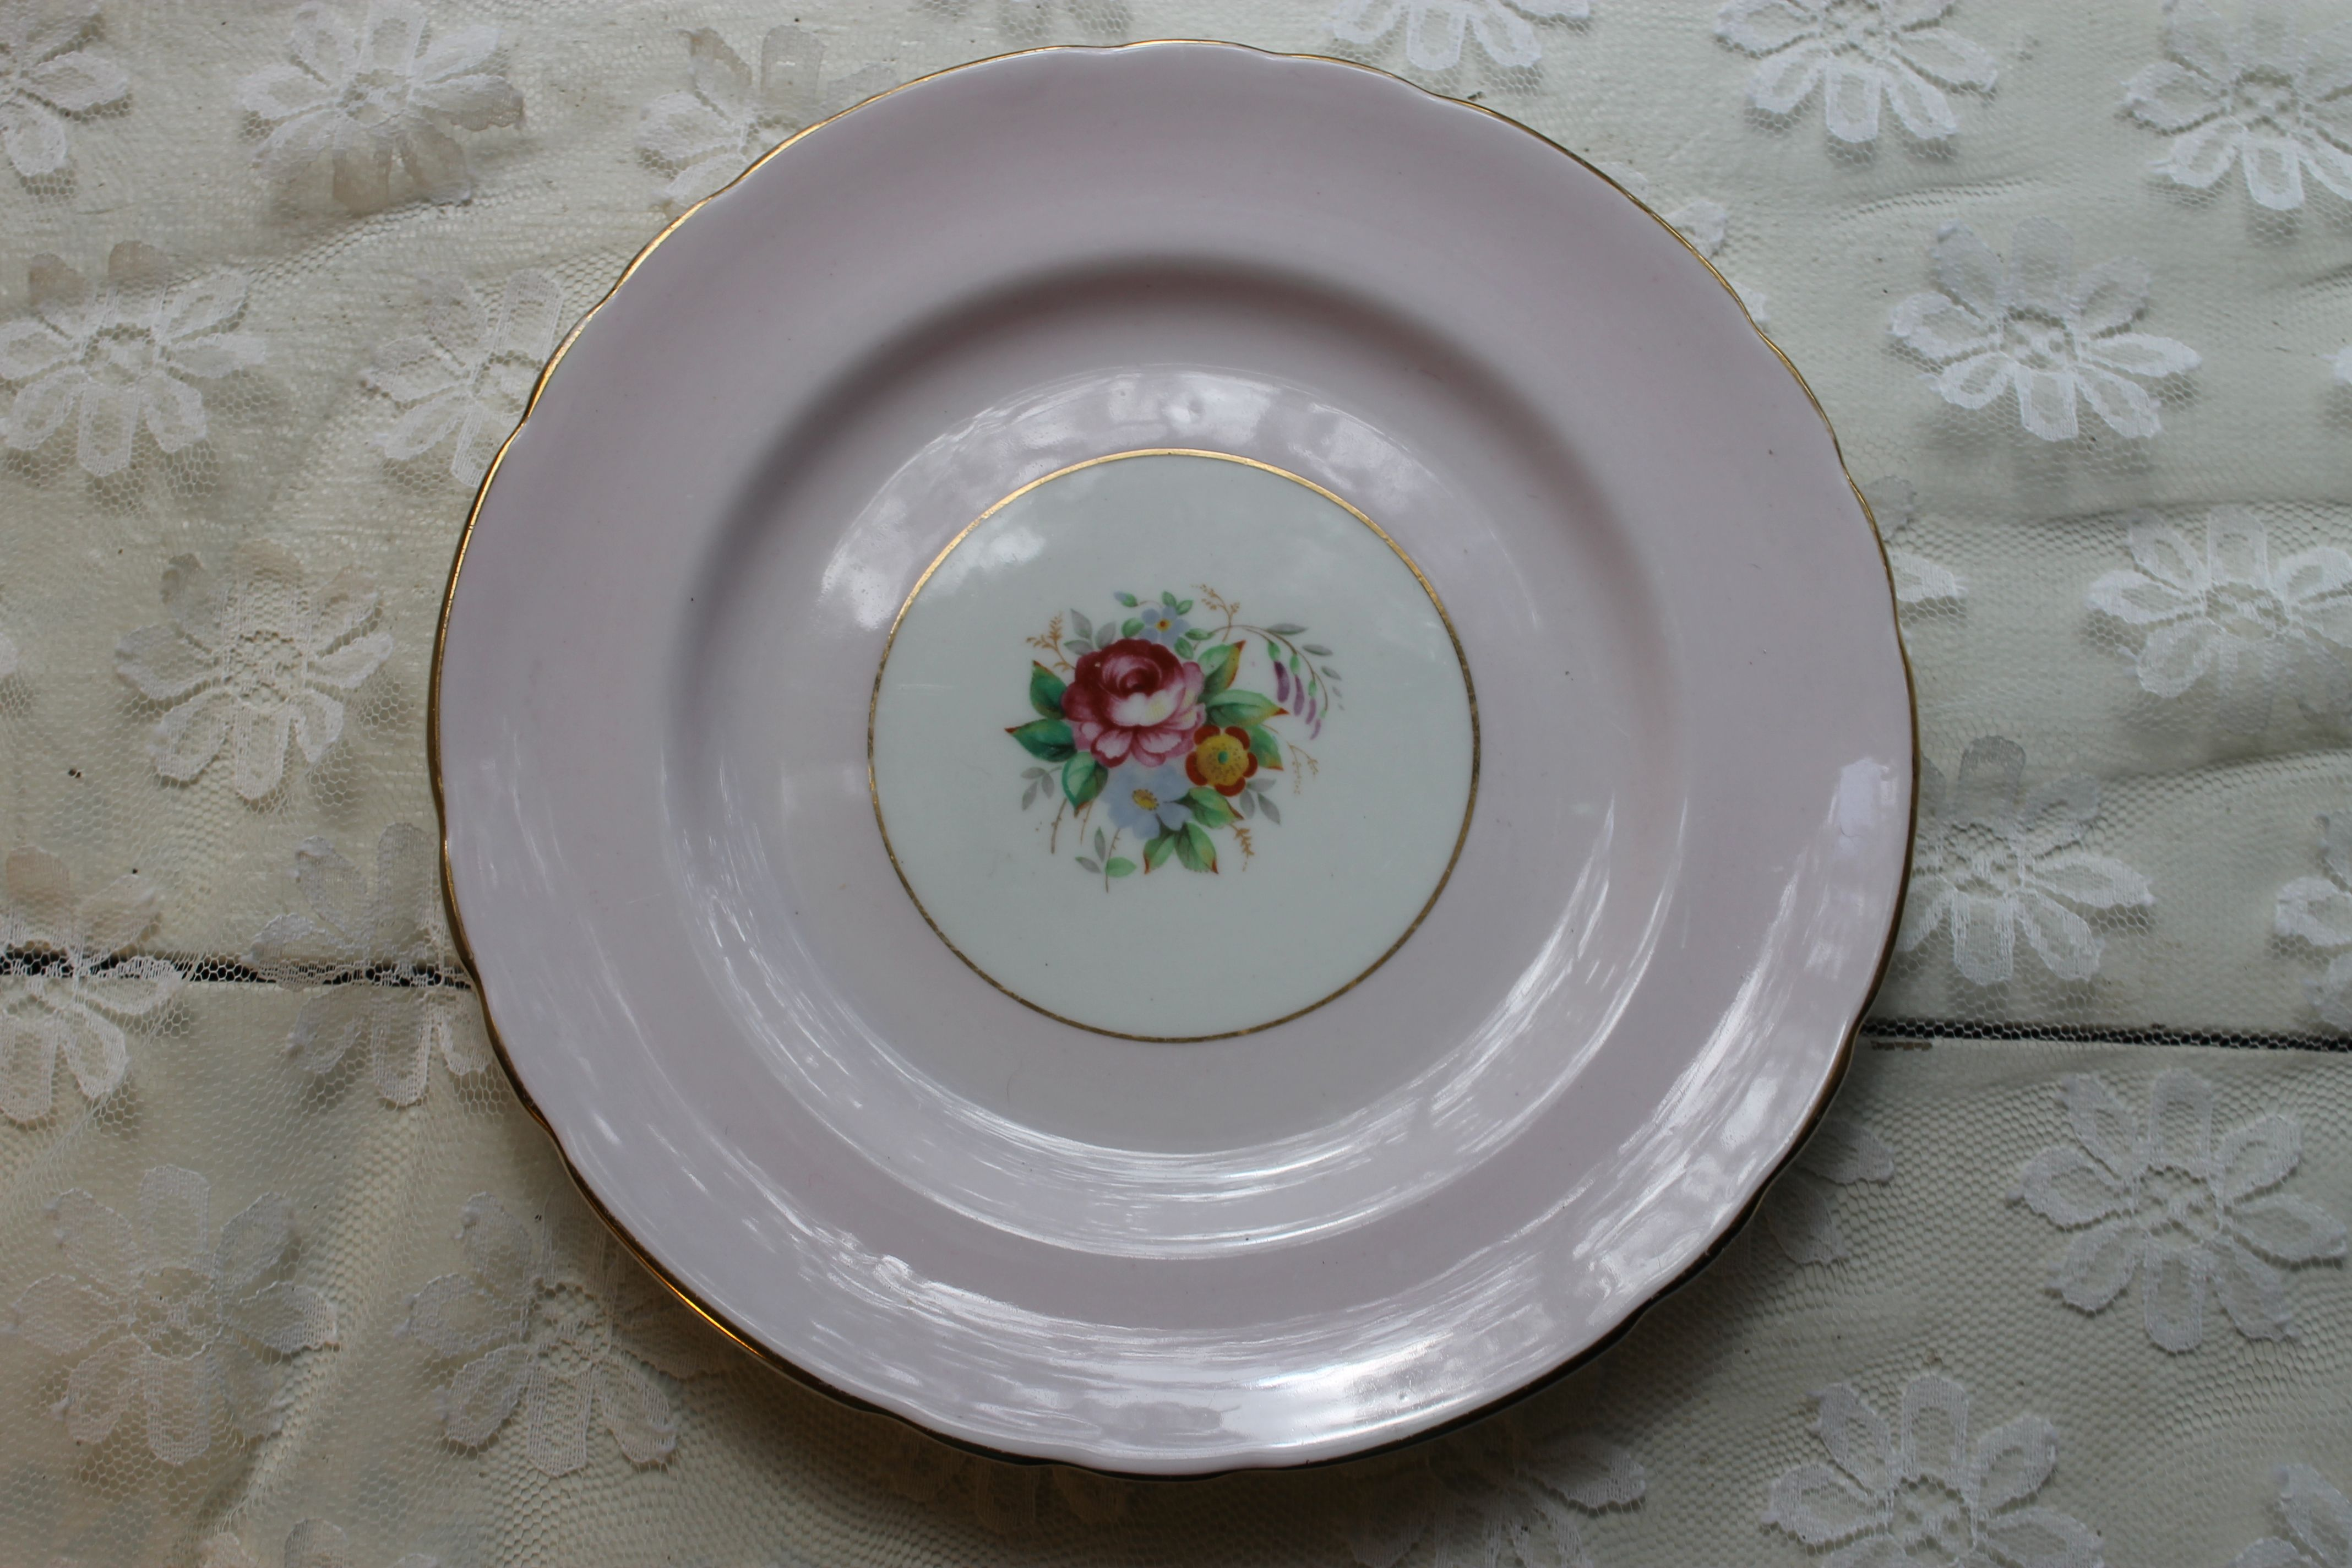 Tuscan Made In England 8 1 Salad Plates 6 Available Southern Vintage Classic China Collection Rentals Vintage Rentals Vintage Decorative Plates